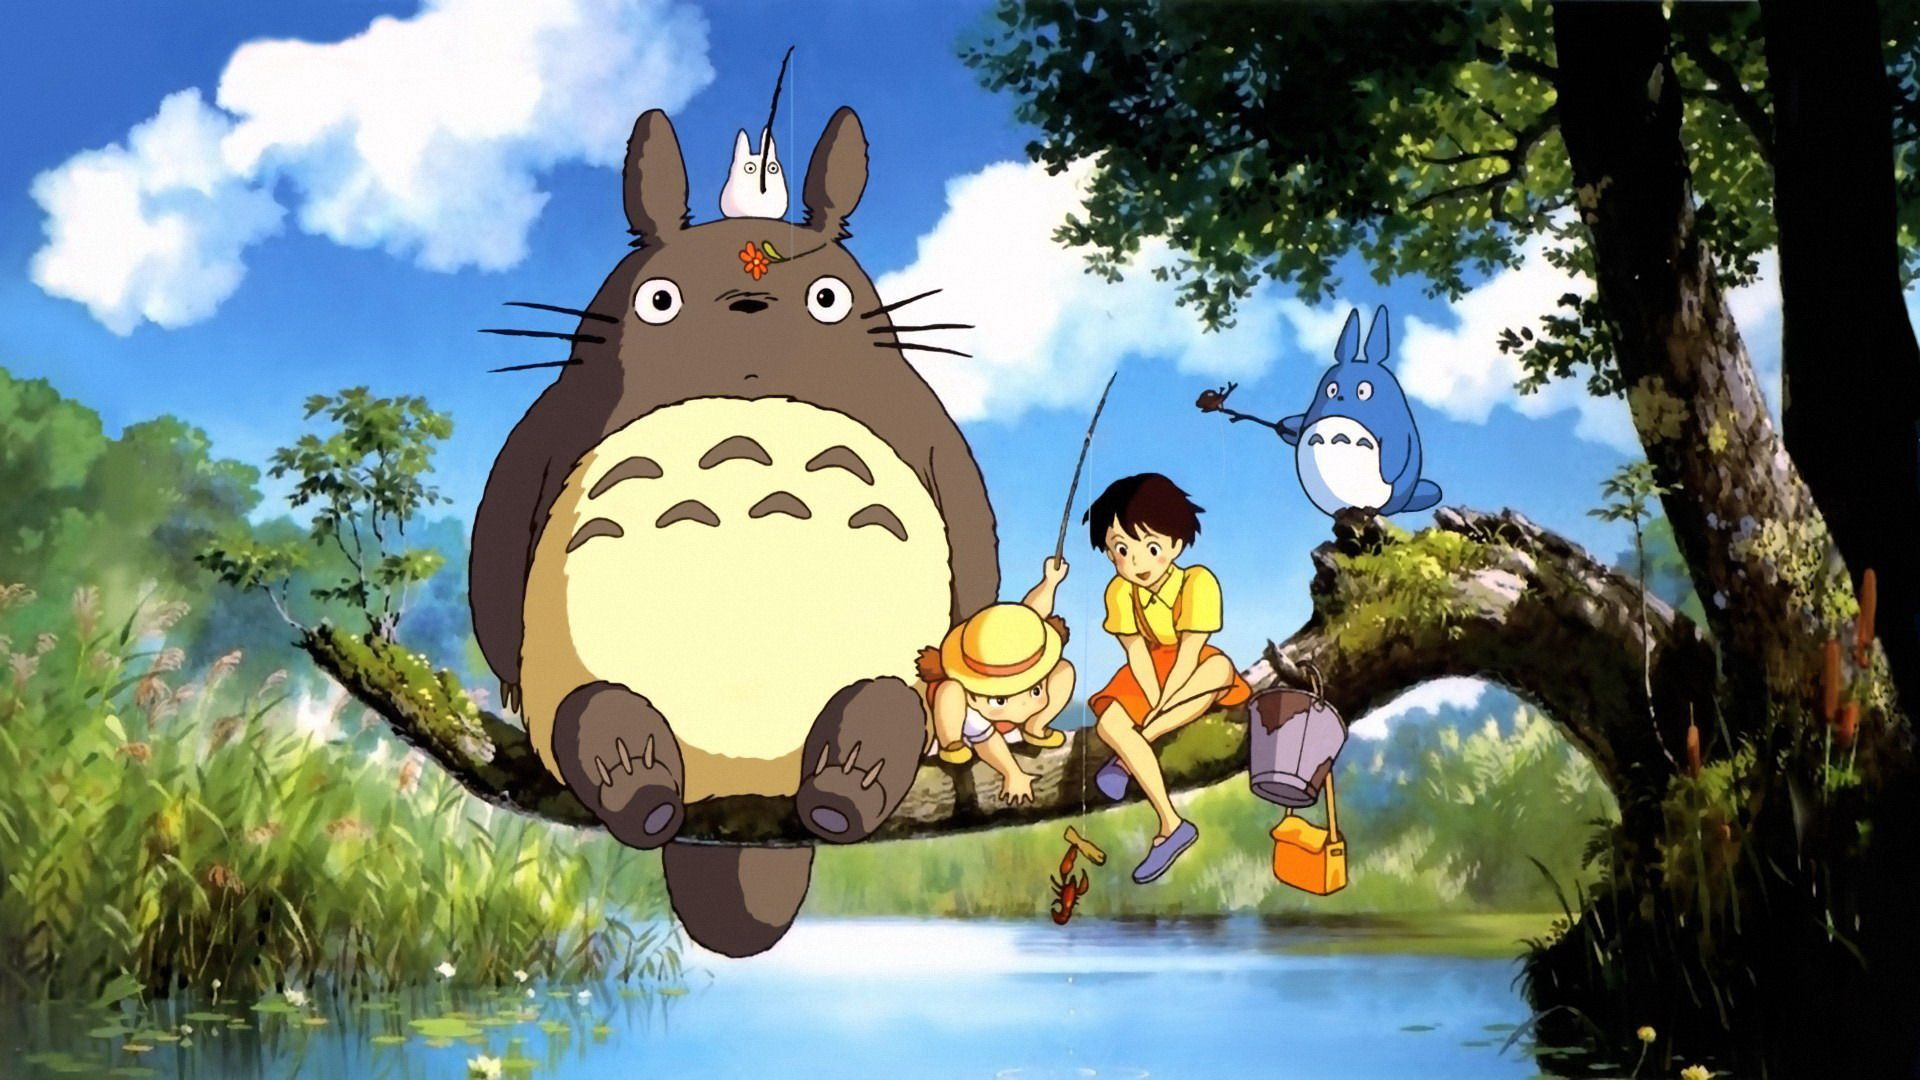 my_neighbor_totoro.jpg